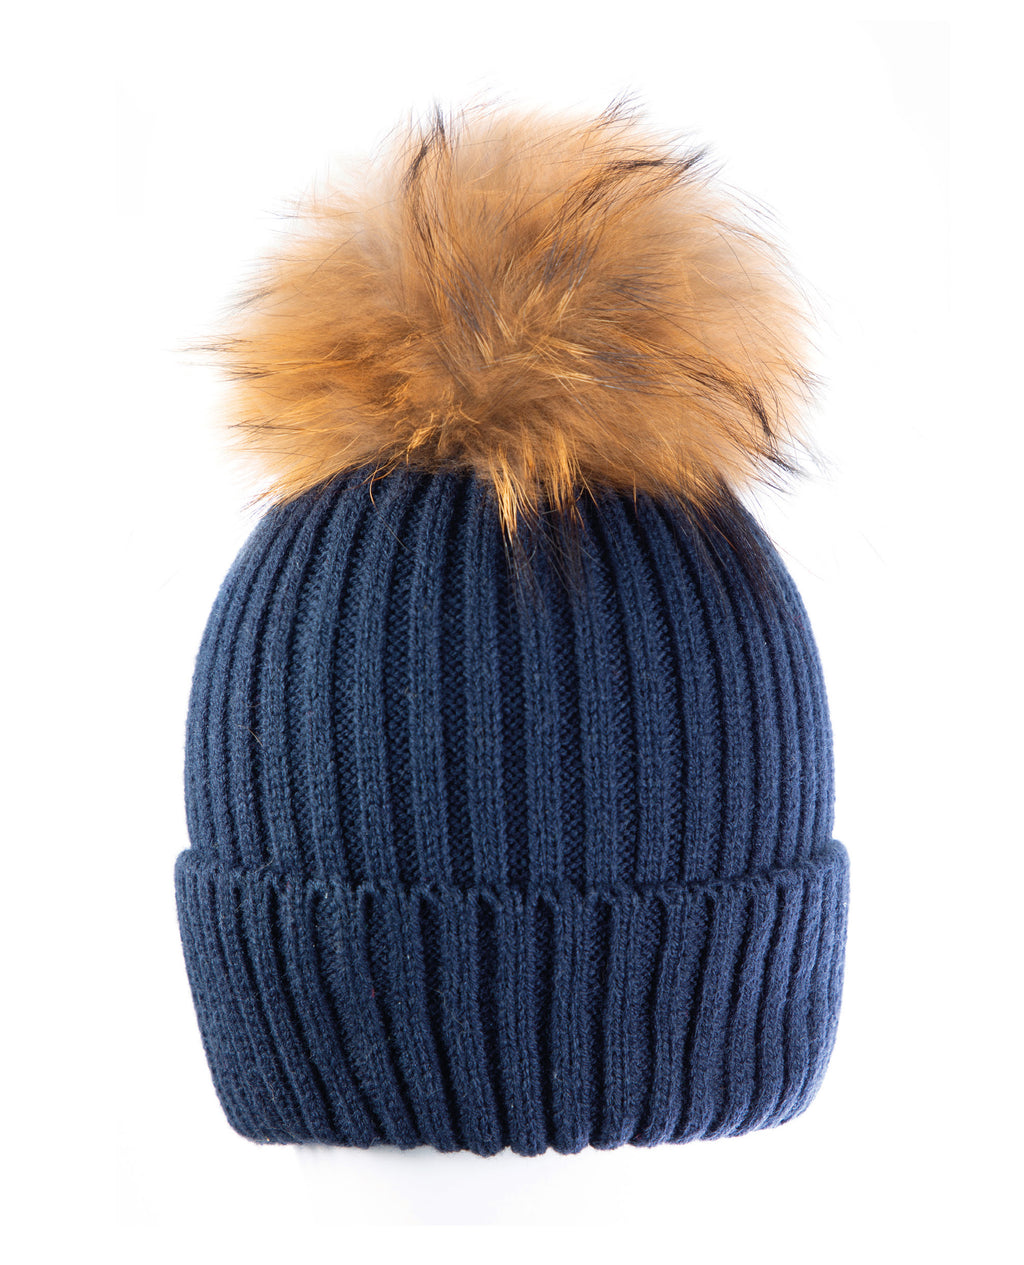 Blue/Gold Beanie Hat with exclusive Pom Pom